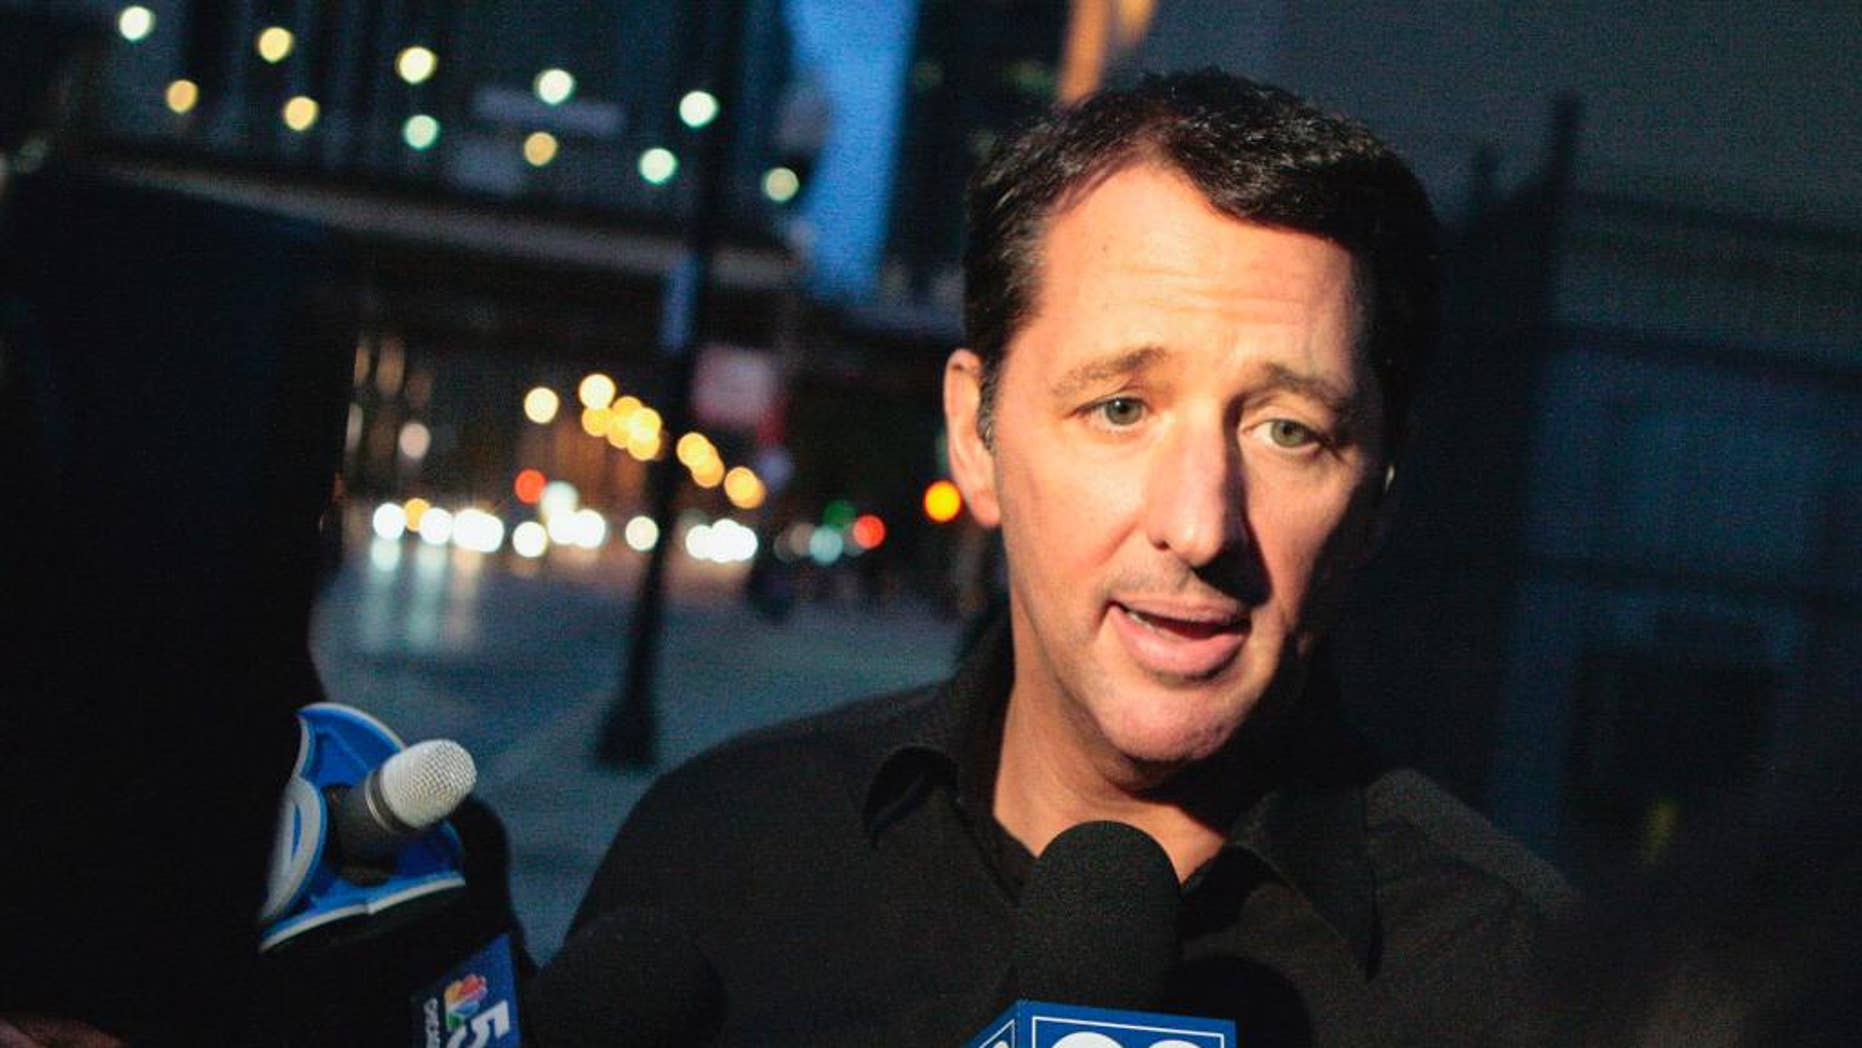 "FILE - In this Oct. 28, 2013 file photo, television infomercial pitchman Kevin Trudeau speaks to the media after leaving the Metropolitan Correctional Center in downtown Chicago. On Monday, March 17, 2014, a federal judge in Chicago is scheduled to sentence Trudeau for bilking consumers through his infomercials. In November 2013, jurors convicted Trudeau for defying a court order barring him from running infomercials that made false claims about his book, ""The Weight Loss Cure They Don't Want You to Know About."" (AP Photo/Sun-Times Media, Michael Jarecki) MANDATORY CREDIT, MAGS OUT, NO SALES"